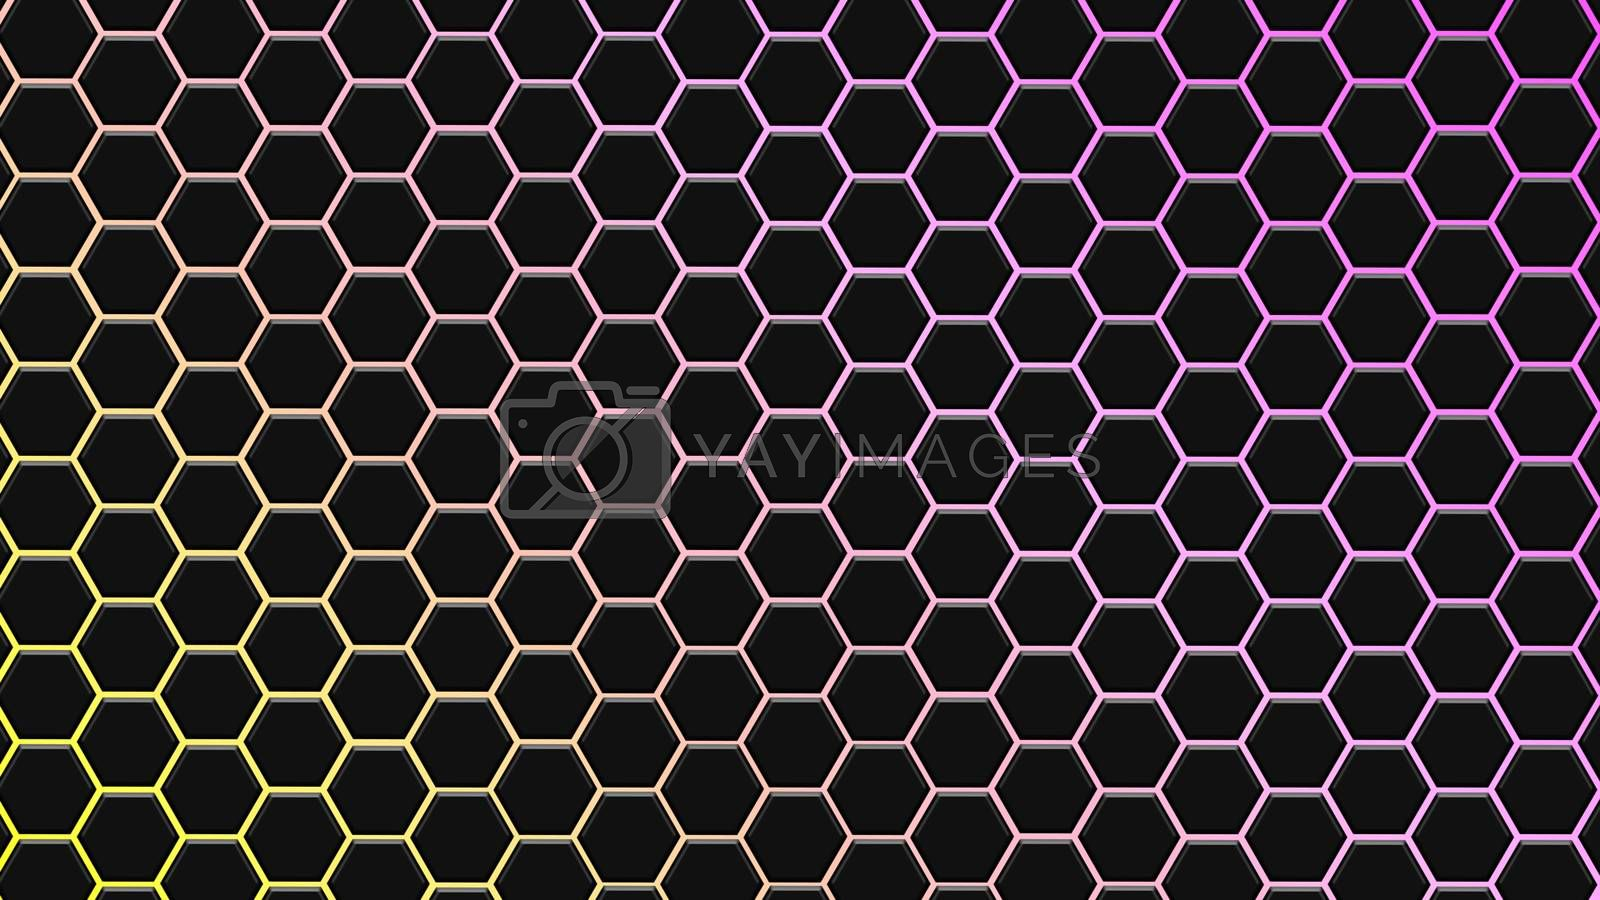 Colorfull hexagonal texture. Abstract background for design.